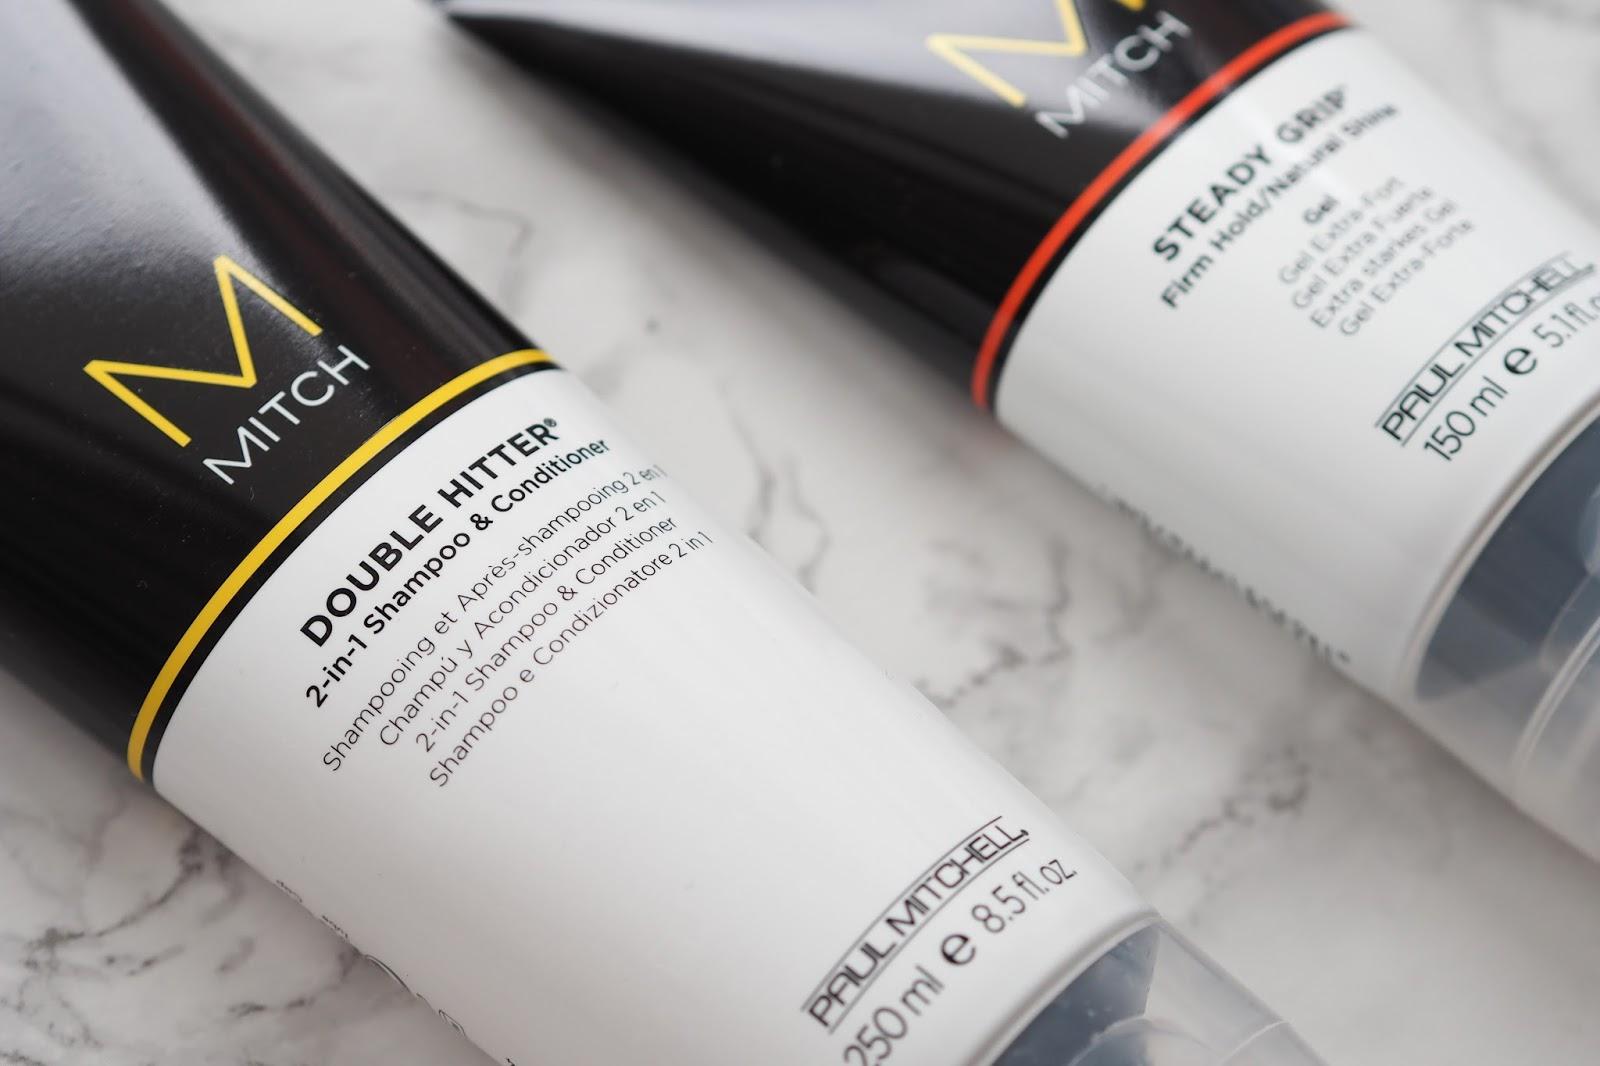 Paul Mitchell Doubler Hitter 2-in-1 Shampoo & Conditioner Review